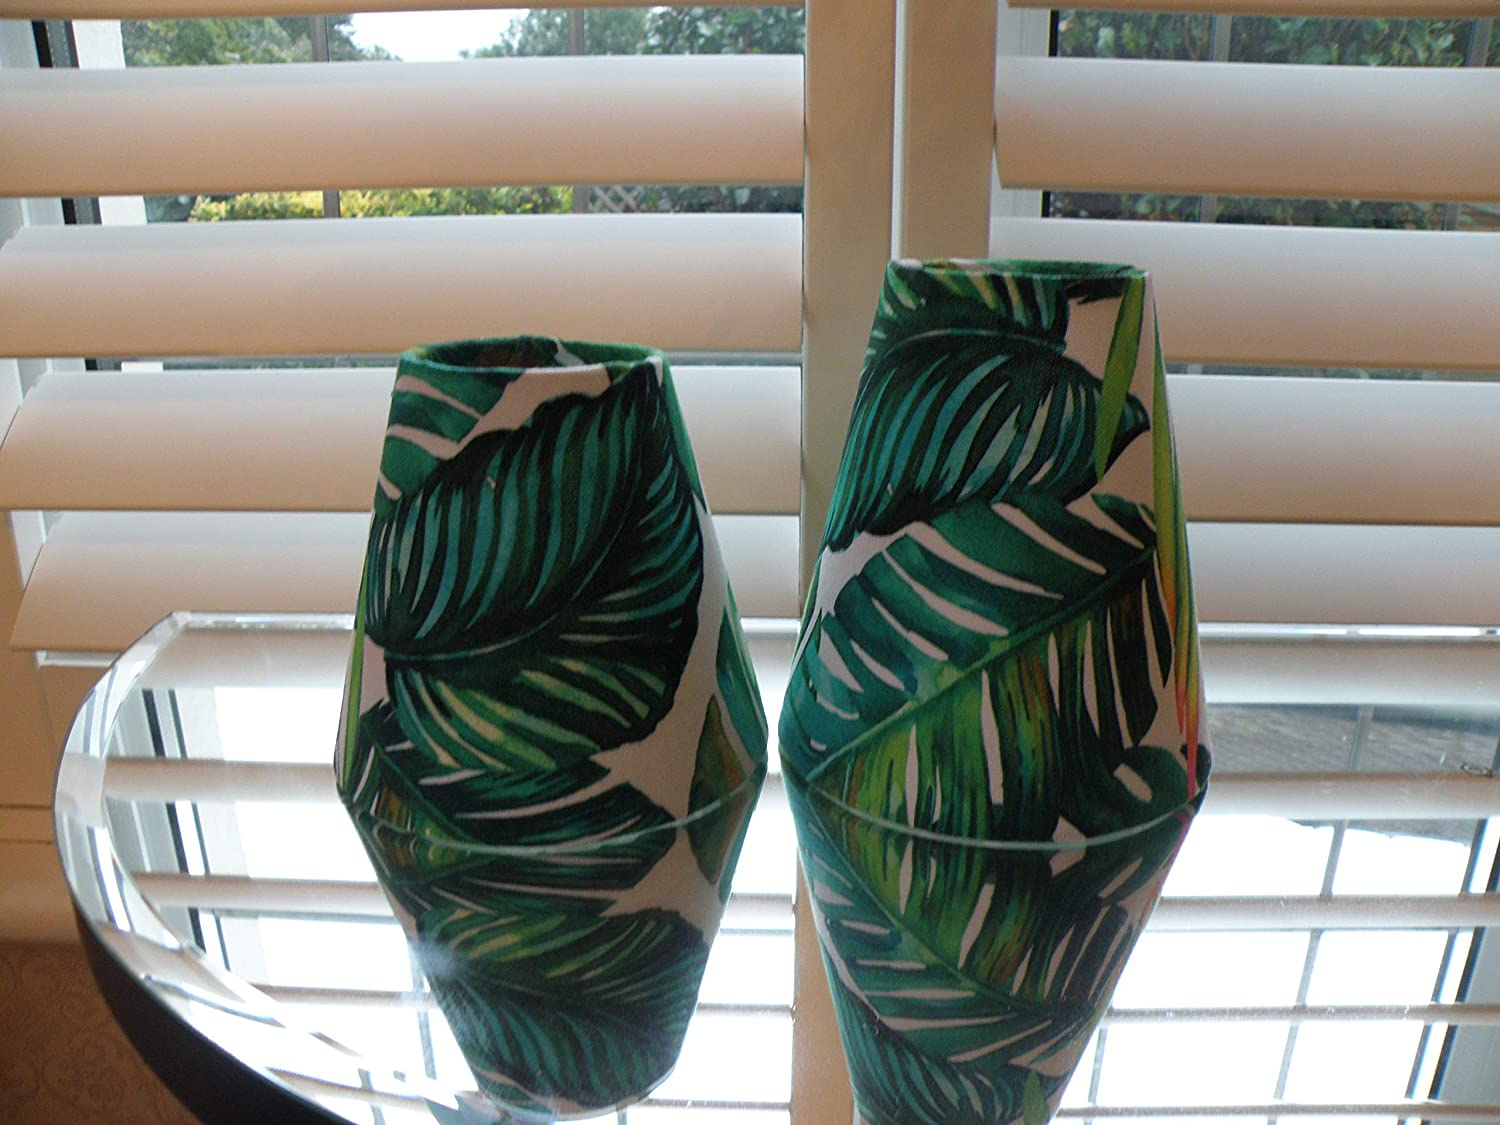 Bespoke Candle Clip Lampshade in Botanical Tropical Palm Green 2 Sizes